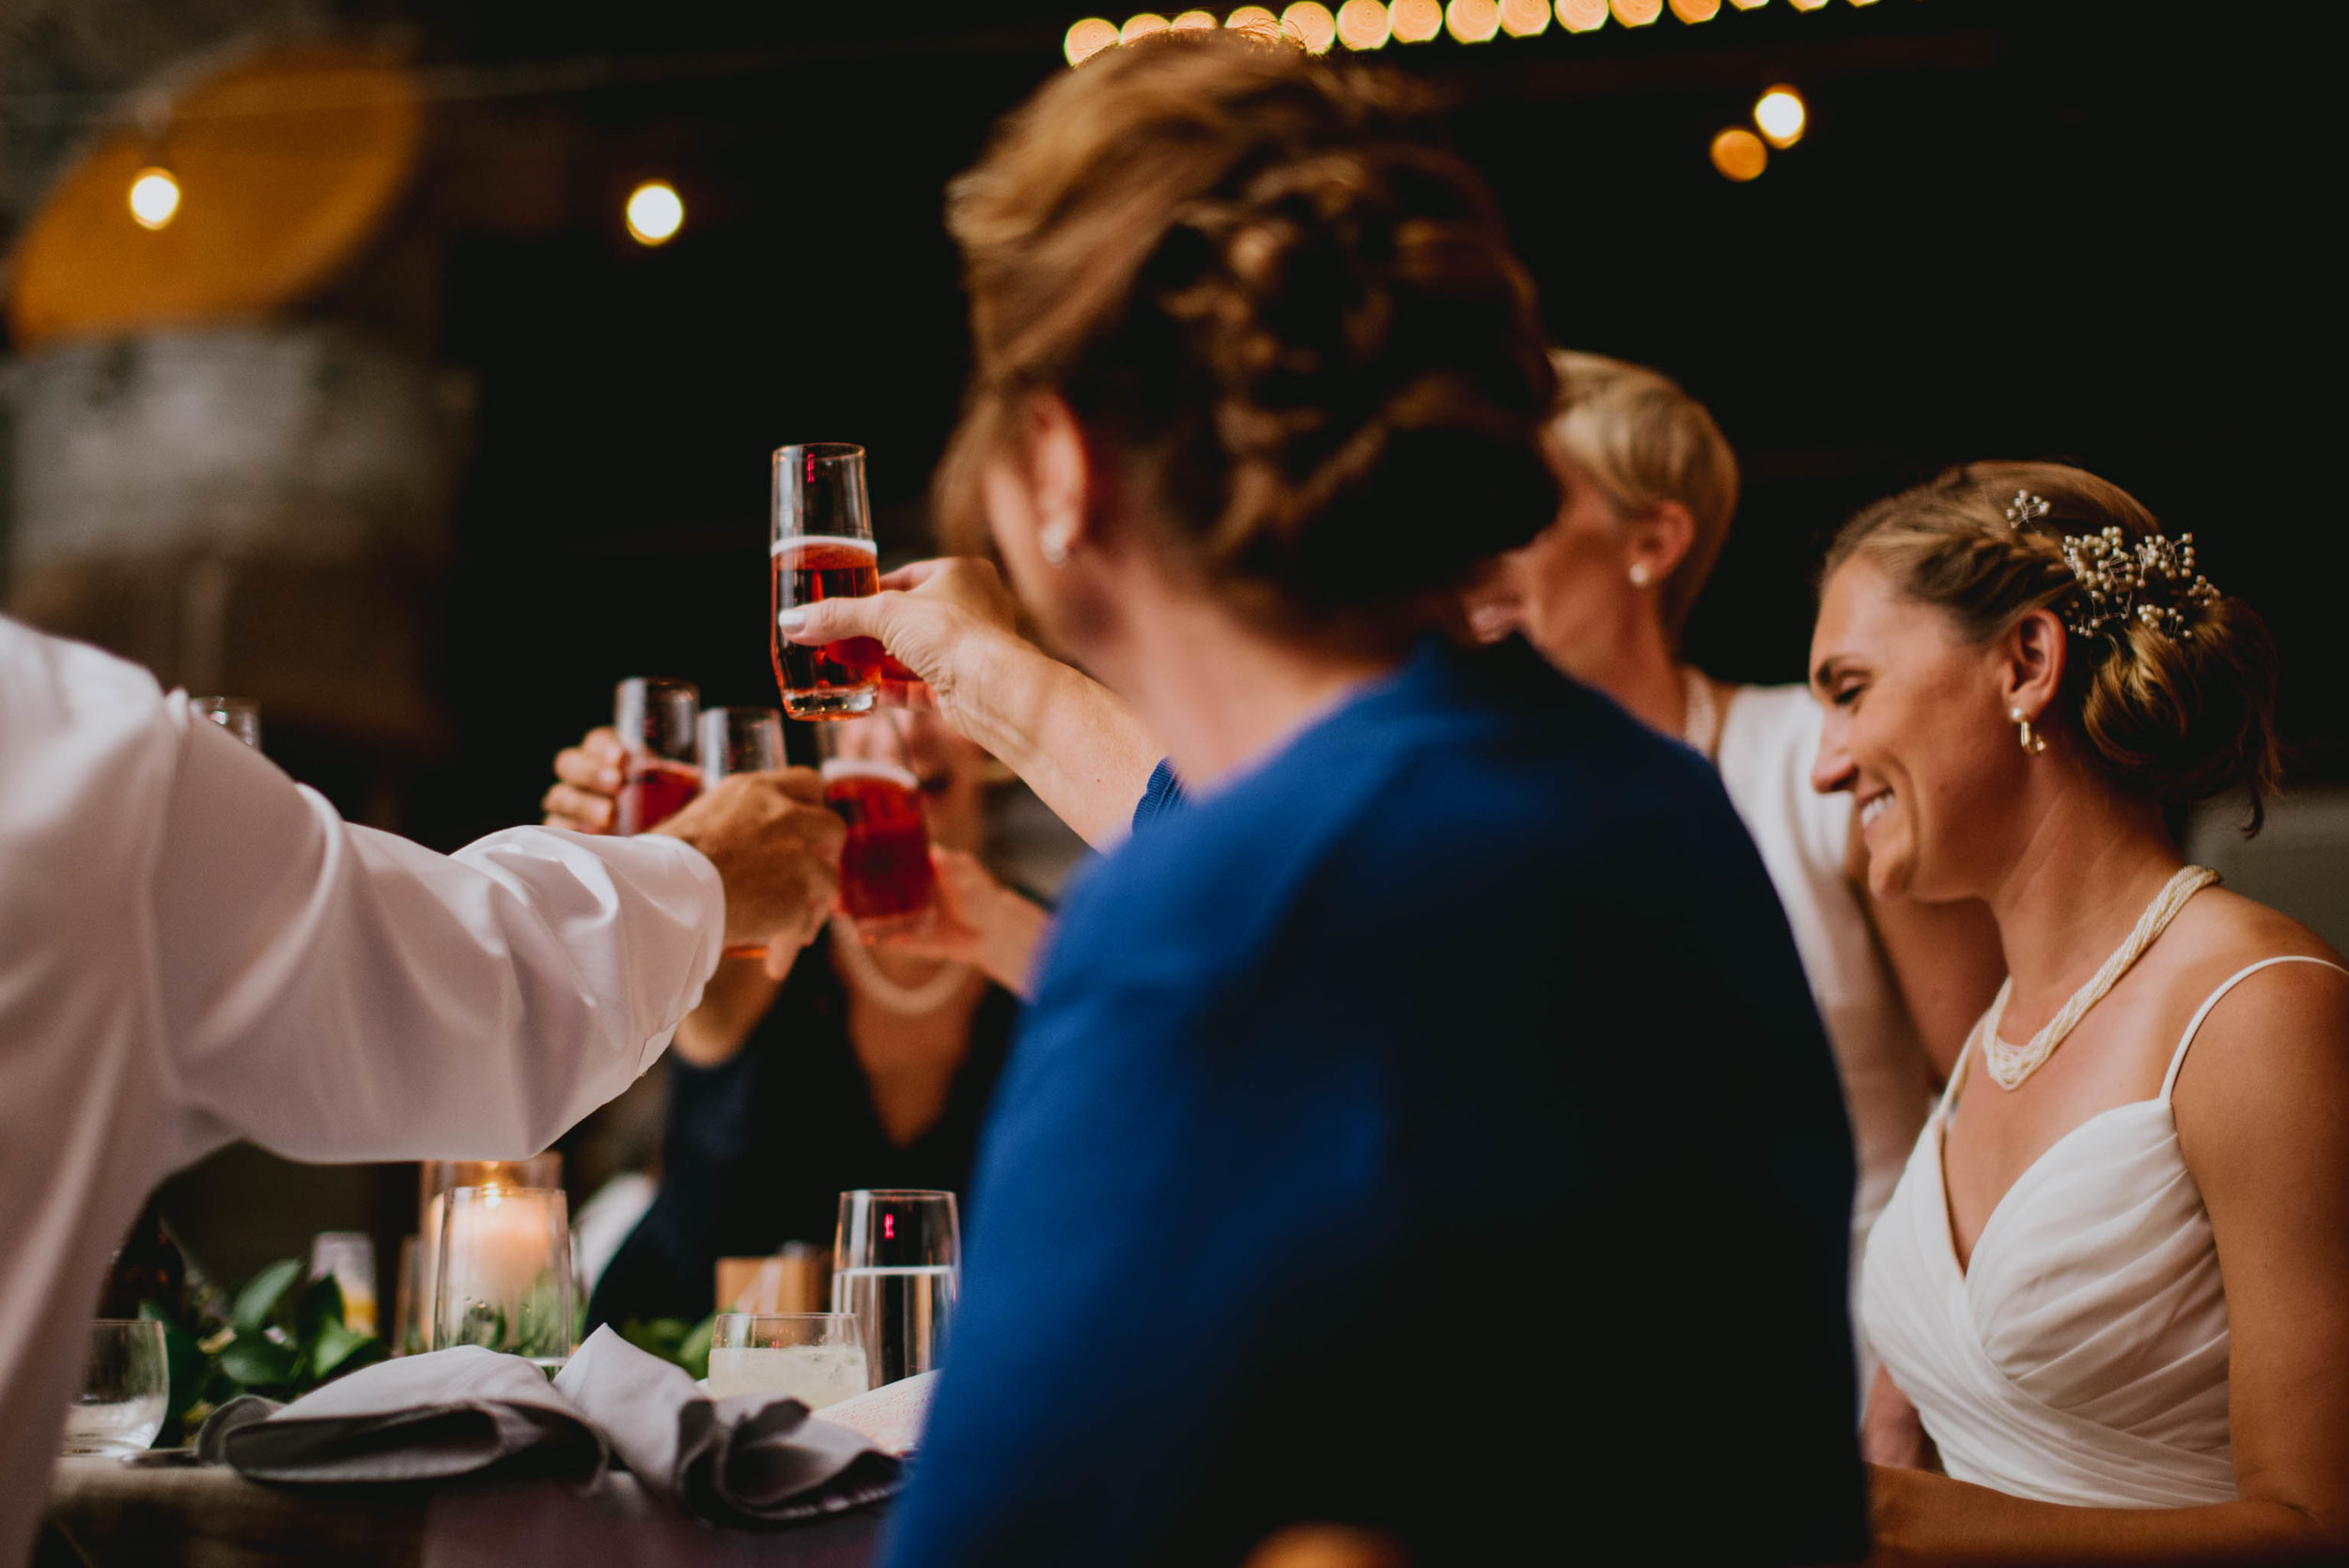 head table sharing in a toast during the wedding reception at haw river ballroom